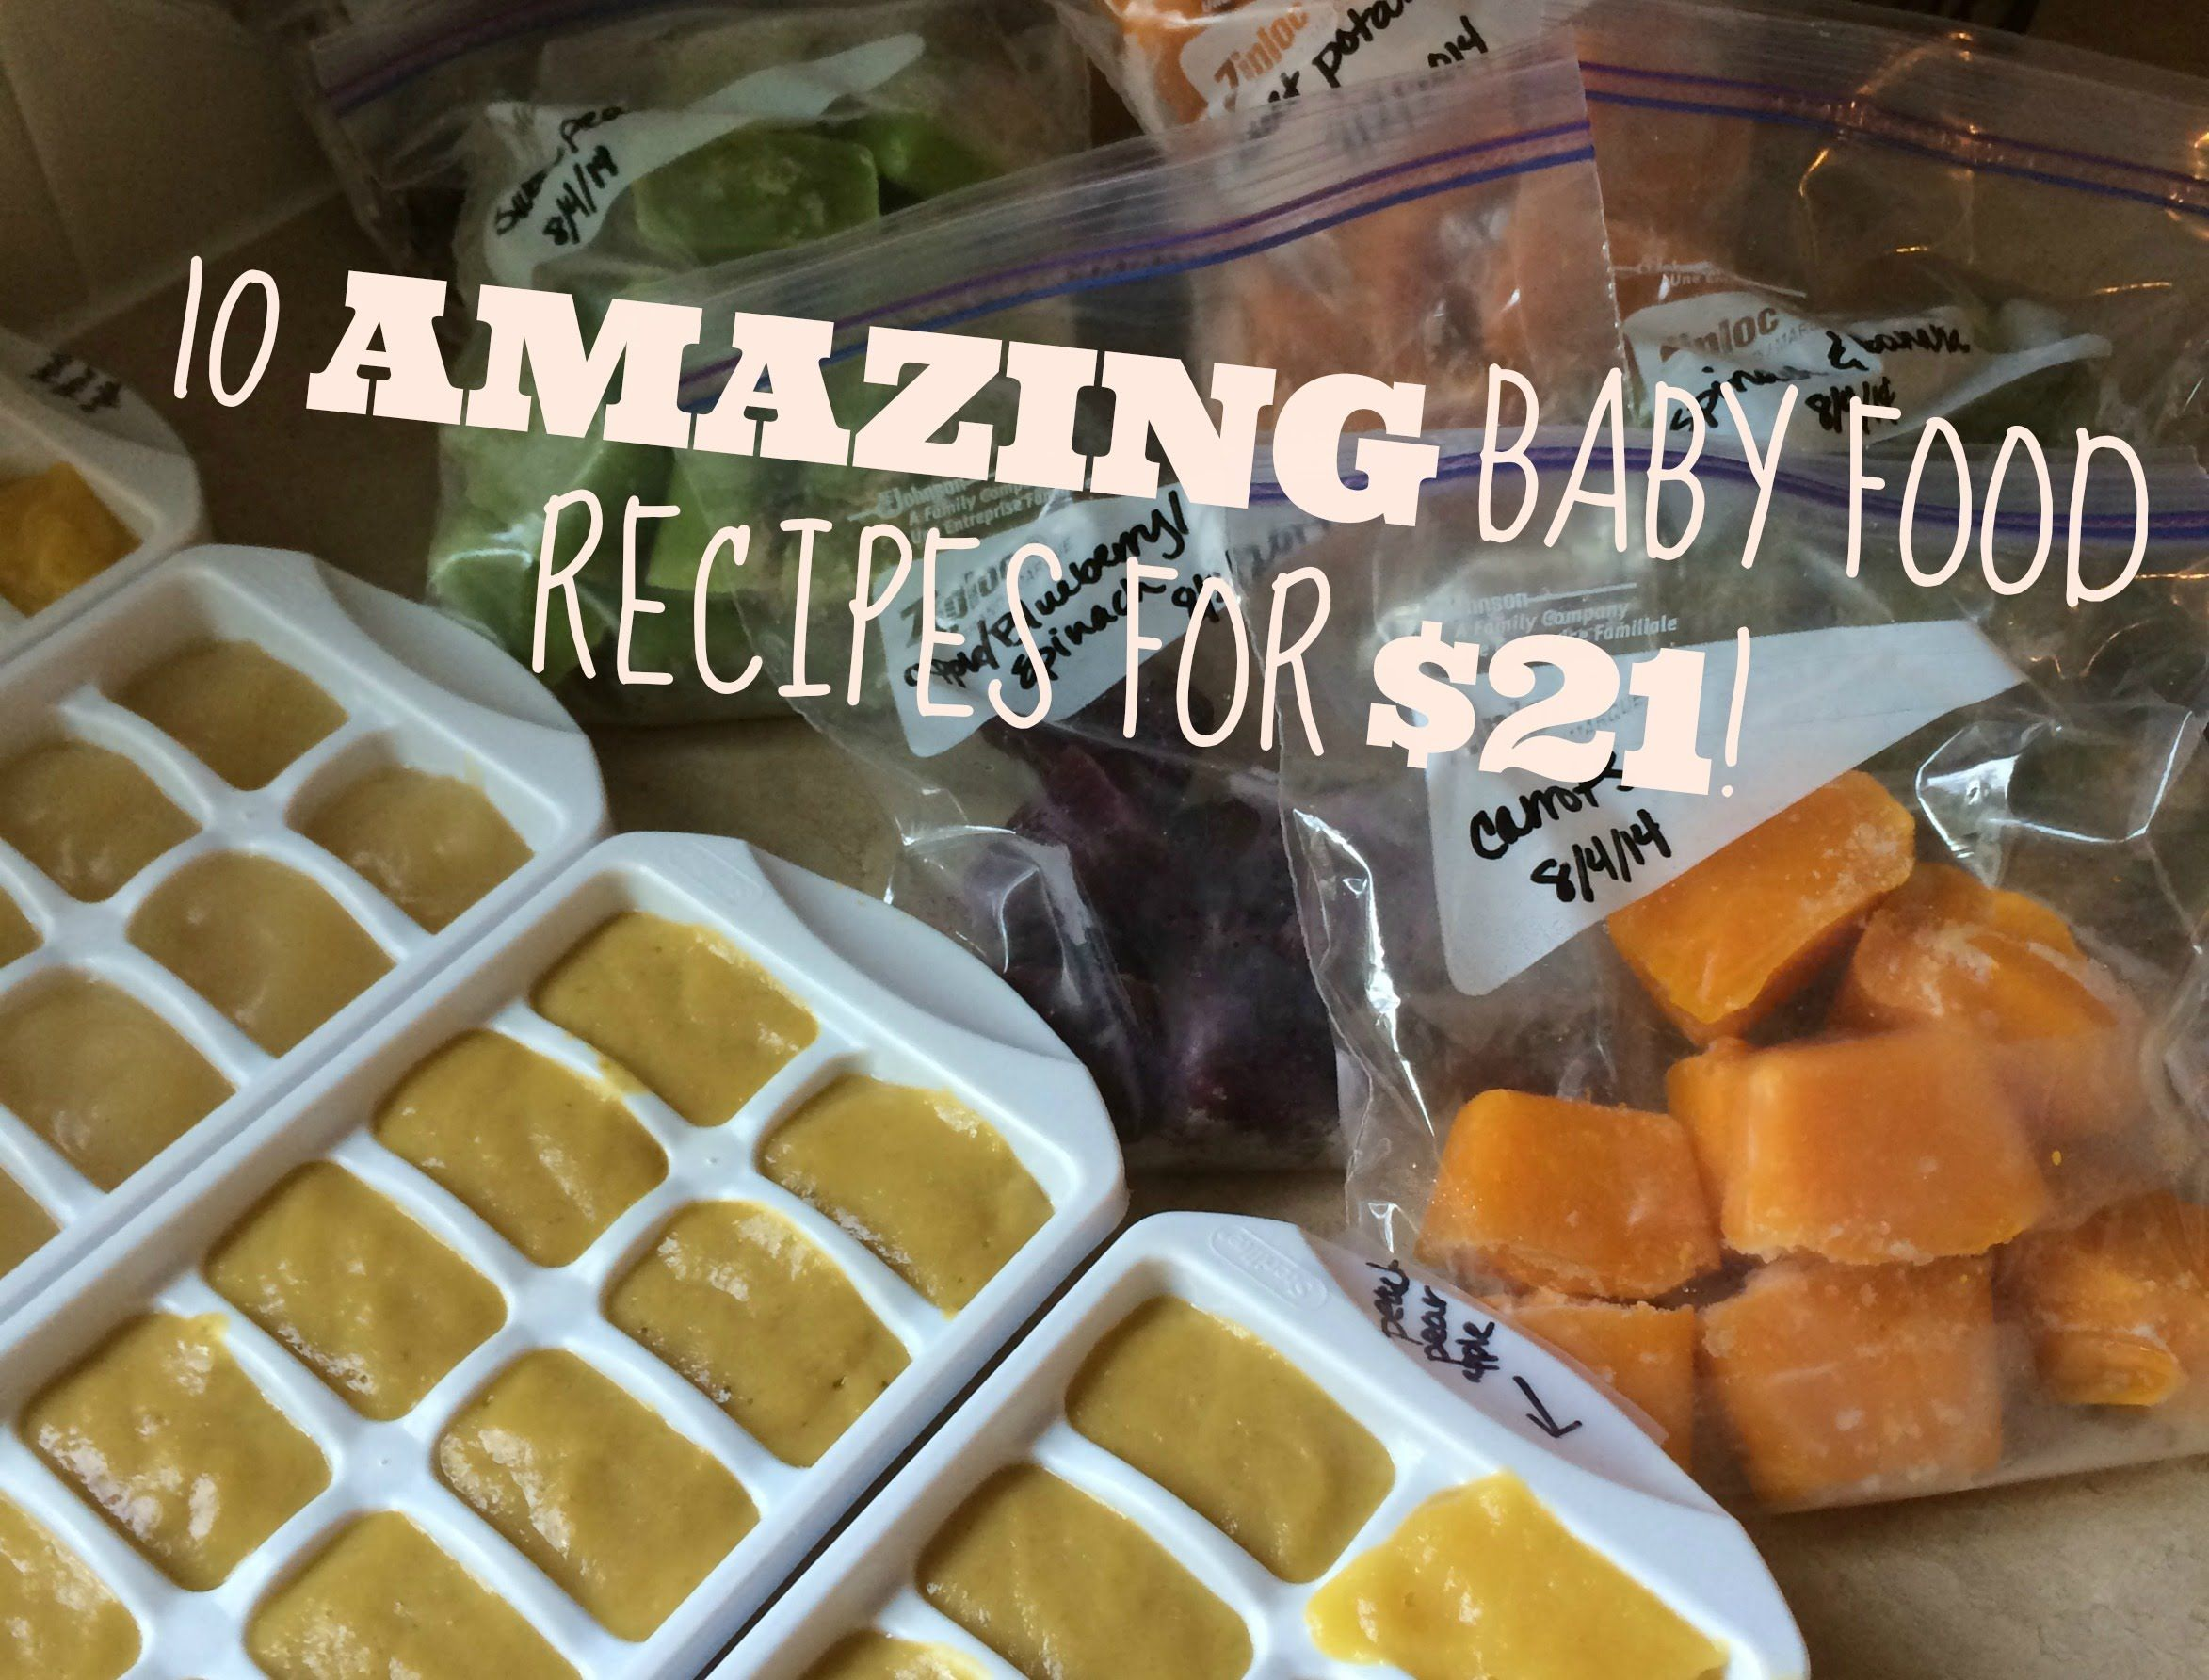 10 homemade baby food recipes for 2195 youtube baby oliver 10 homemade baby food recipes for 2195 youtube forumfinder Gallery